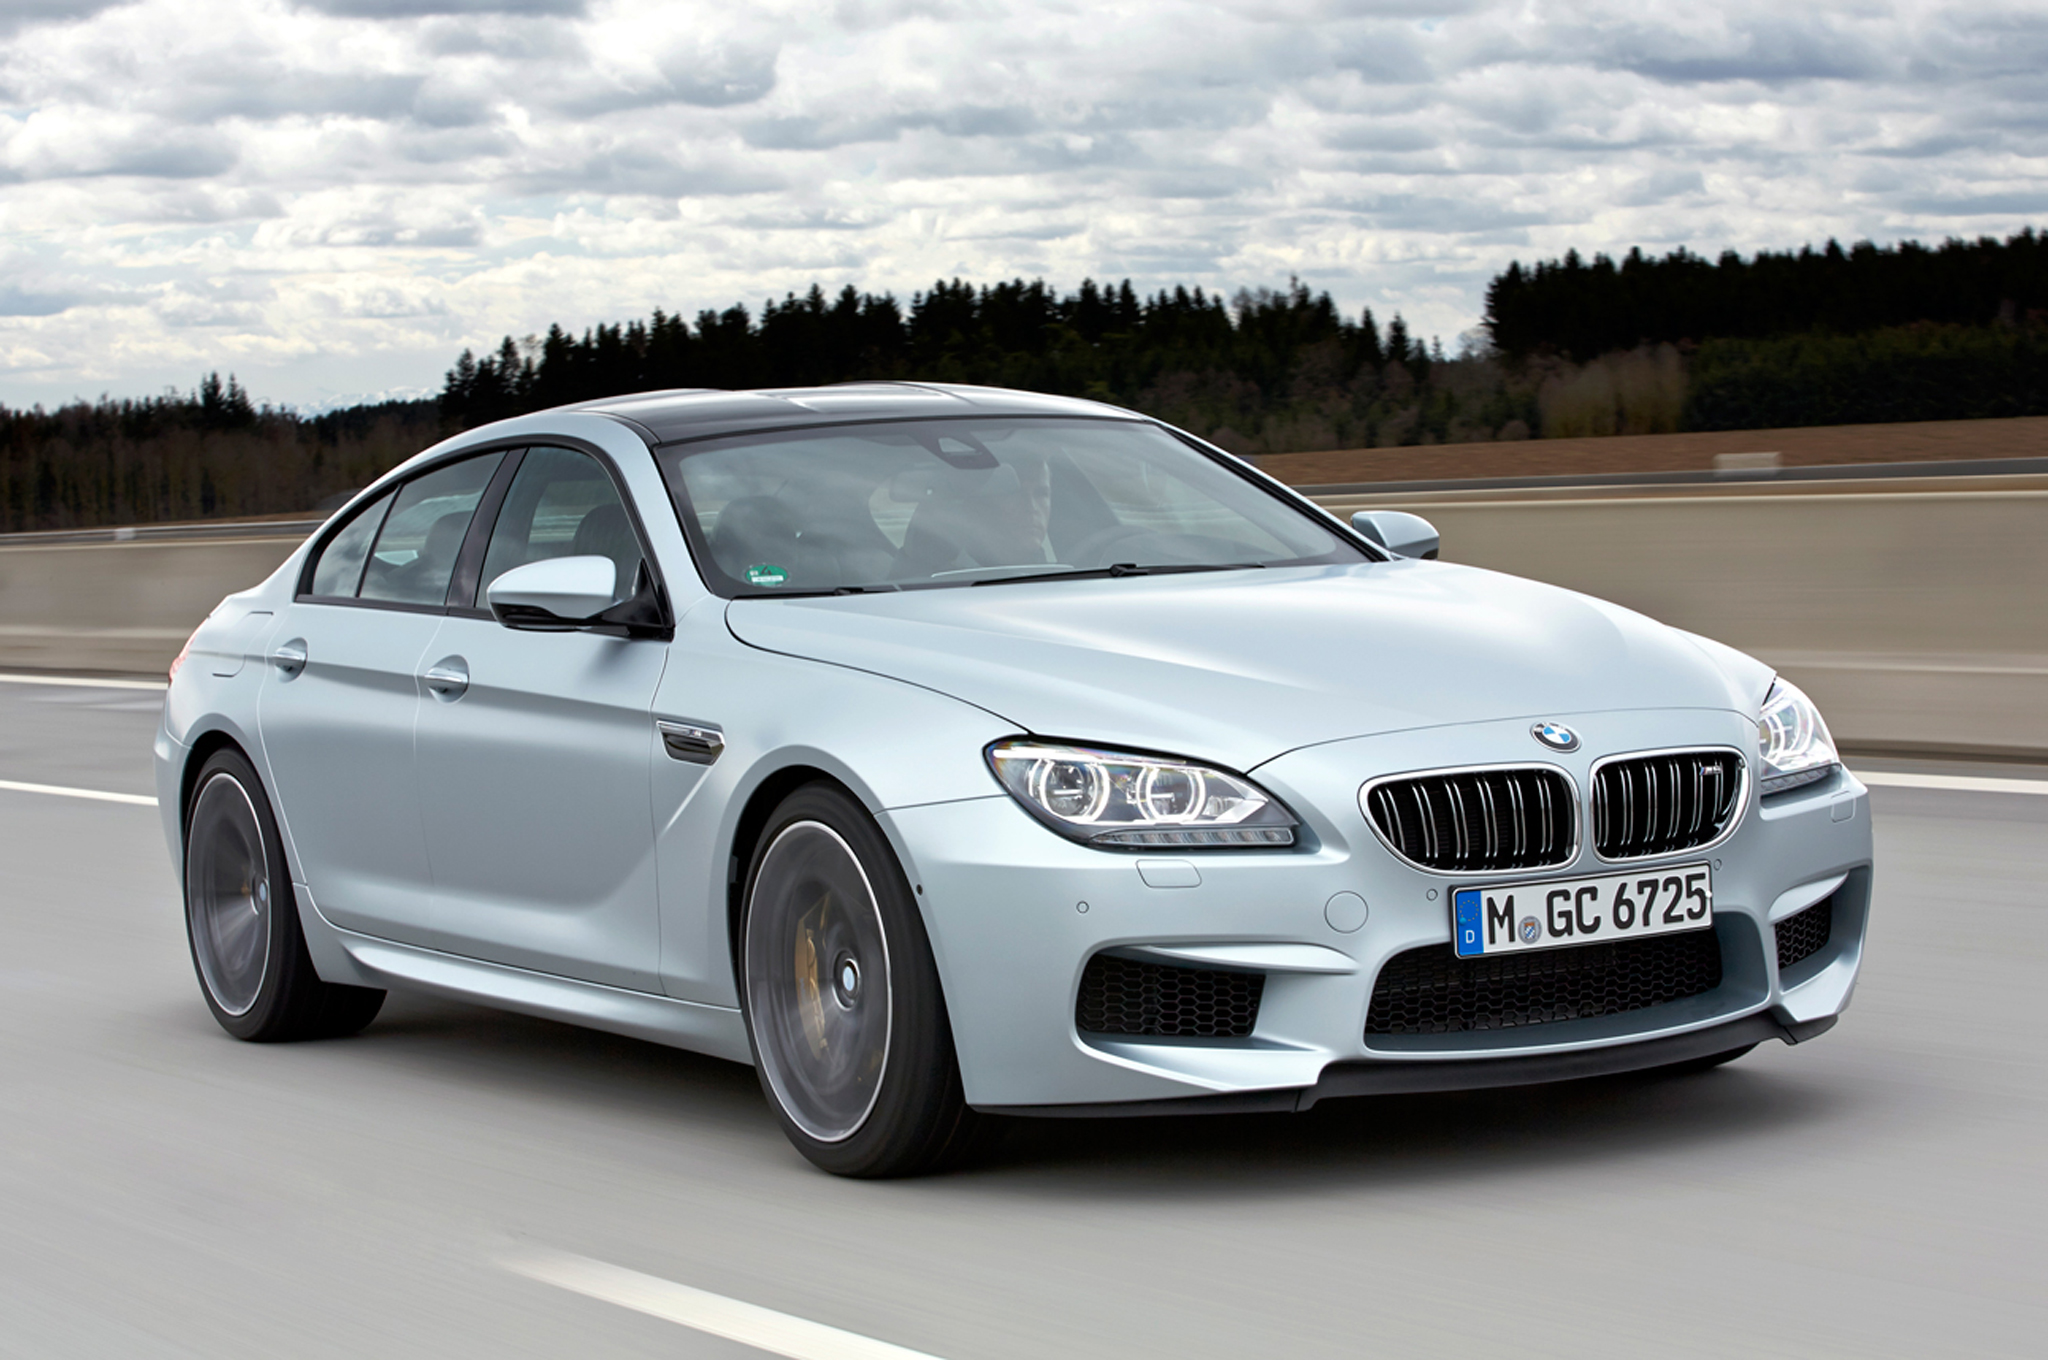 Heavy but Fast 2014 BMW M6 Gran Coupe Tested on New Ignition